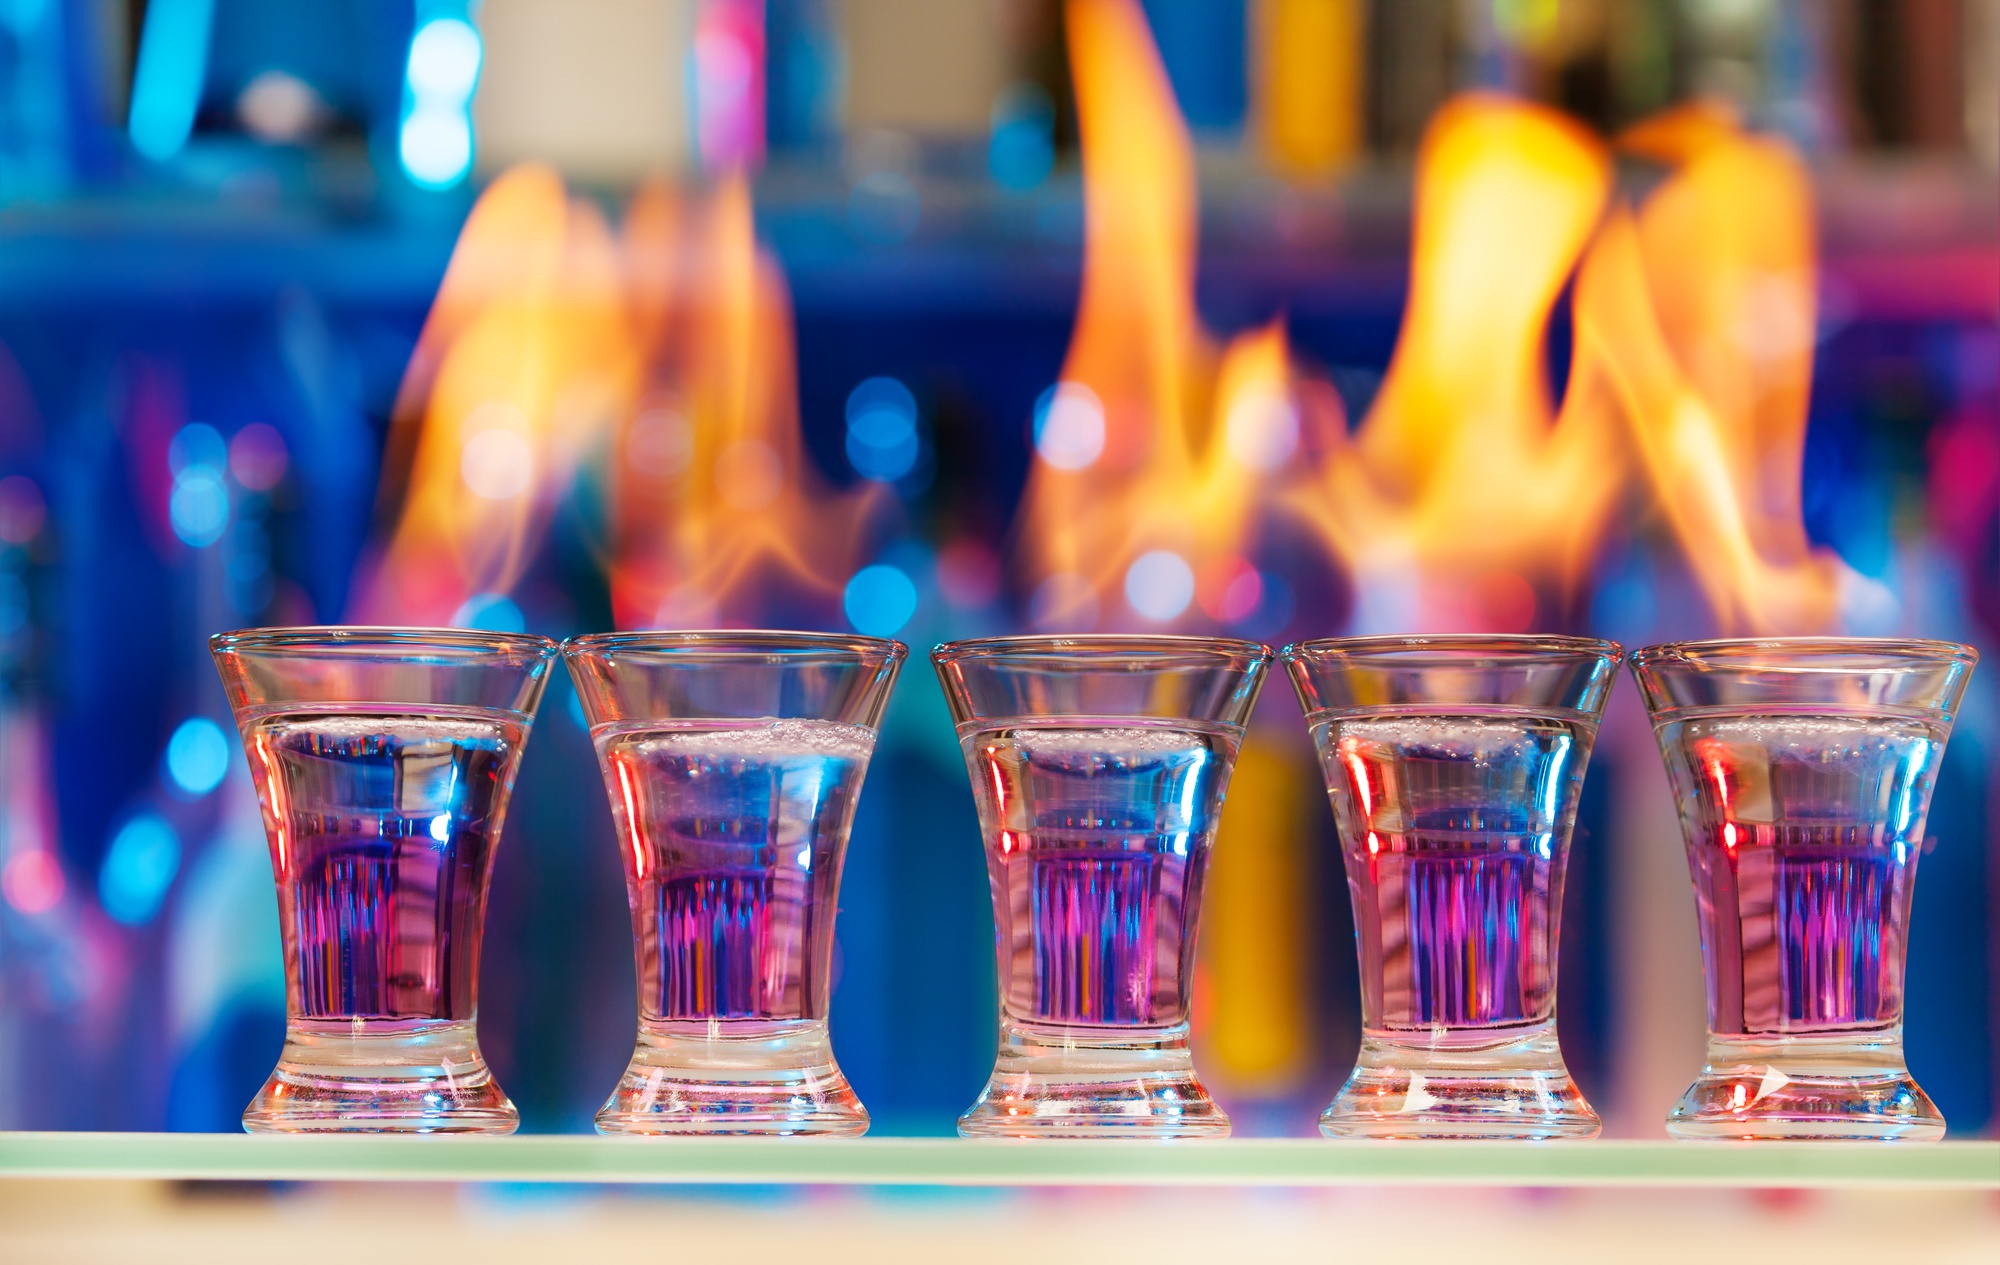 5flamingcocktails